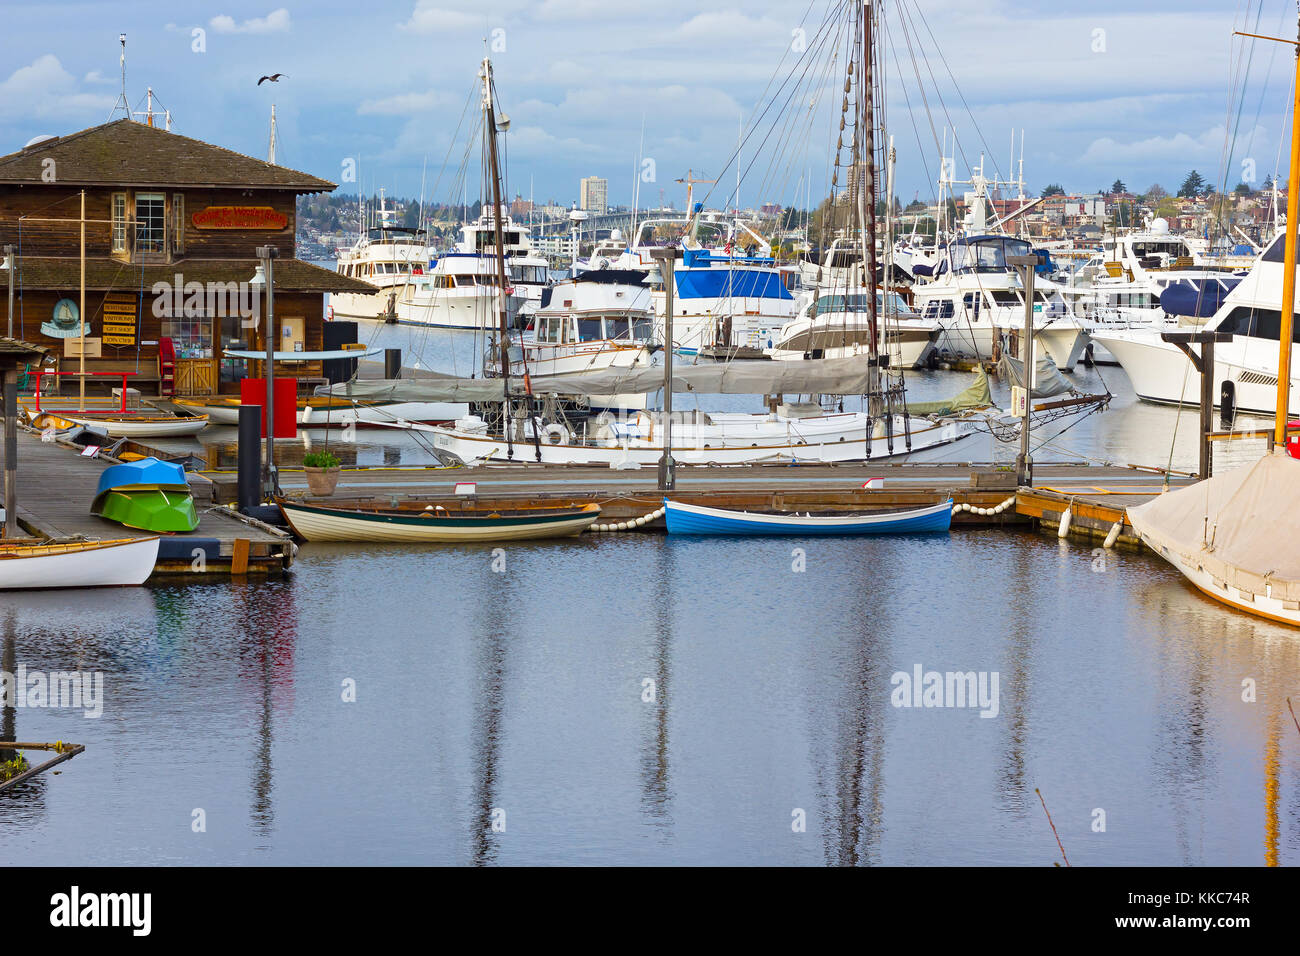 SEATTLE, USA – MARCH 22, 2016: Center for Wooden Boats museum on Lake Union on March 22, 2016 in Seattle, WA, USA. - Stock Image